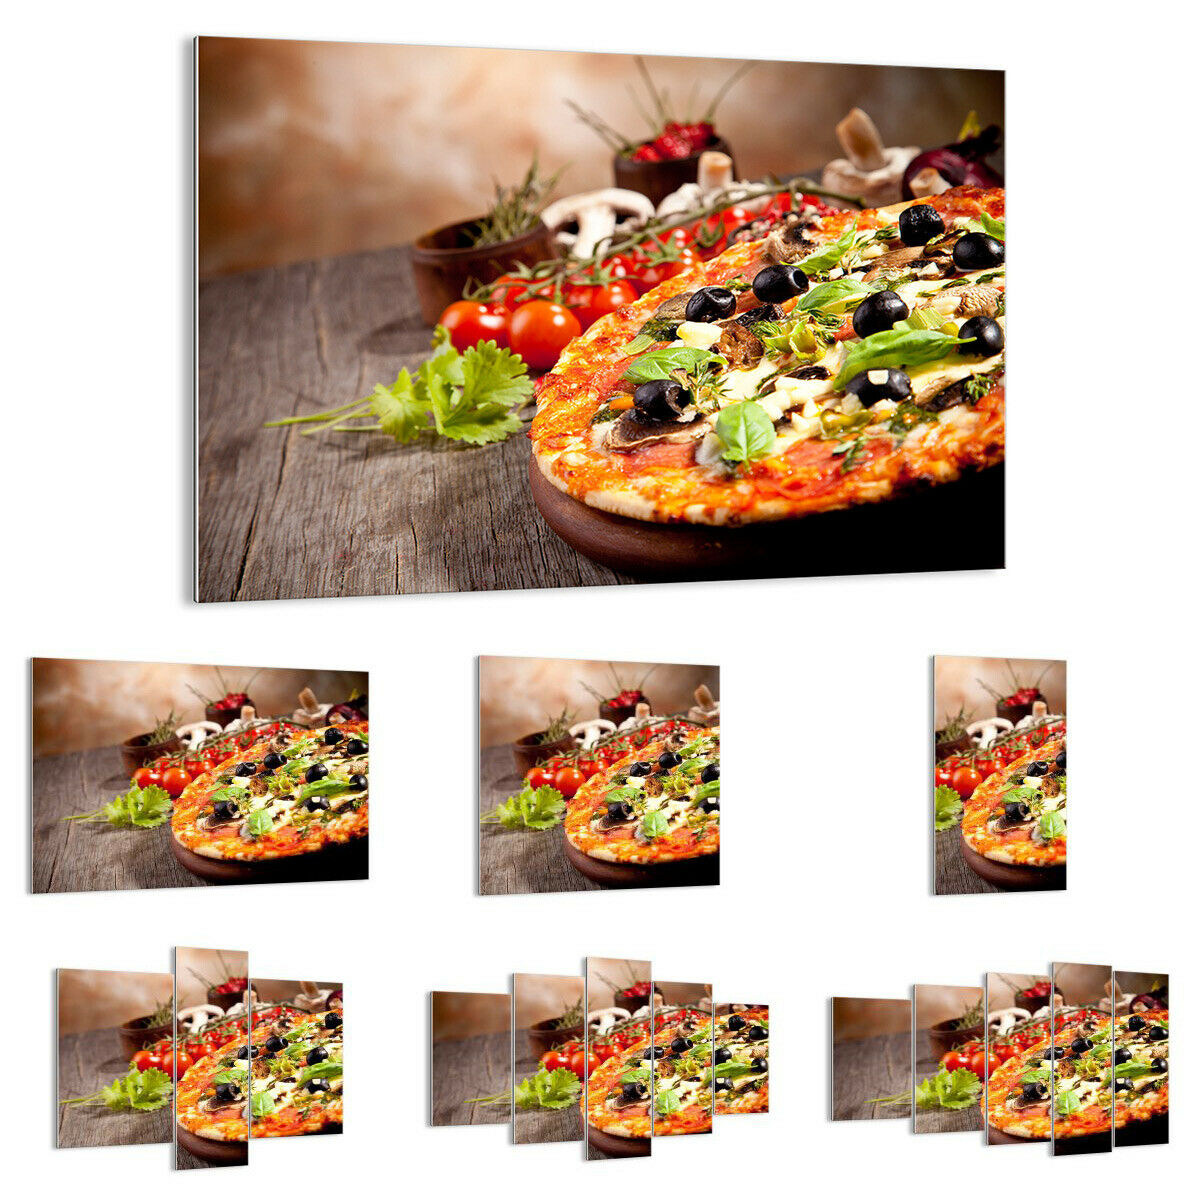 GLASBILD Wandbild Deko Pizza Essen Italien Tradition 2791 DE